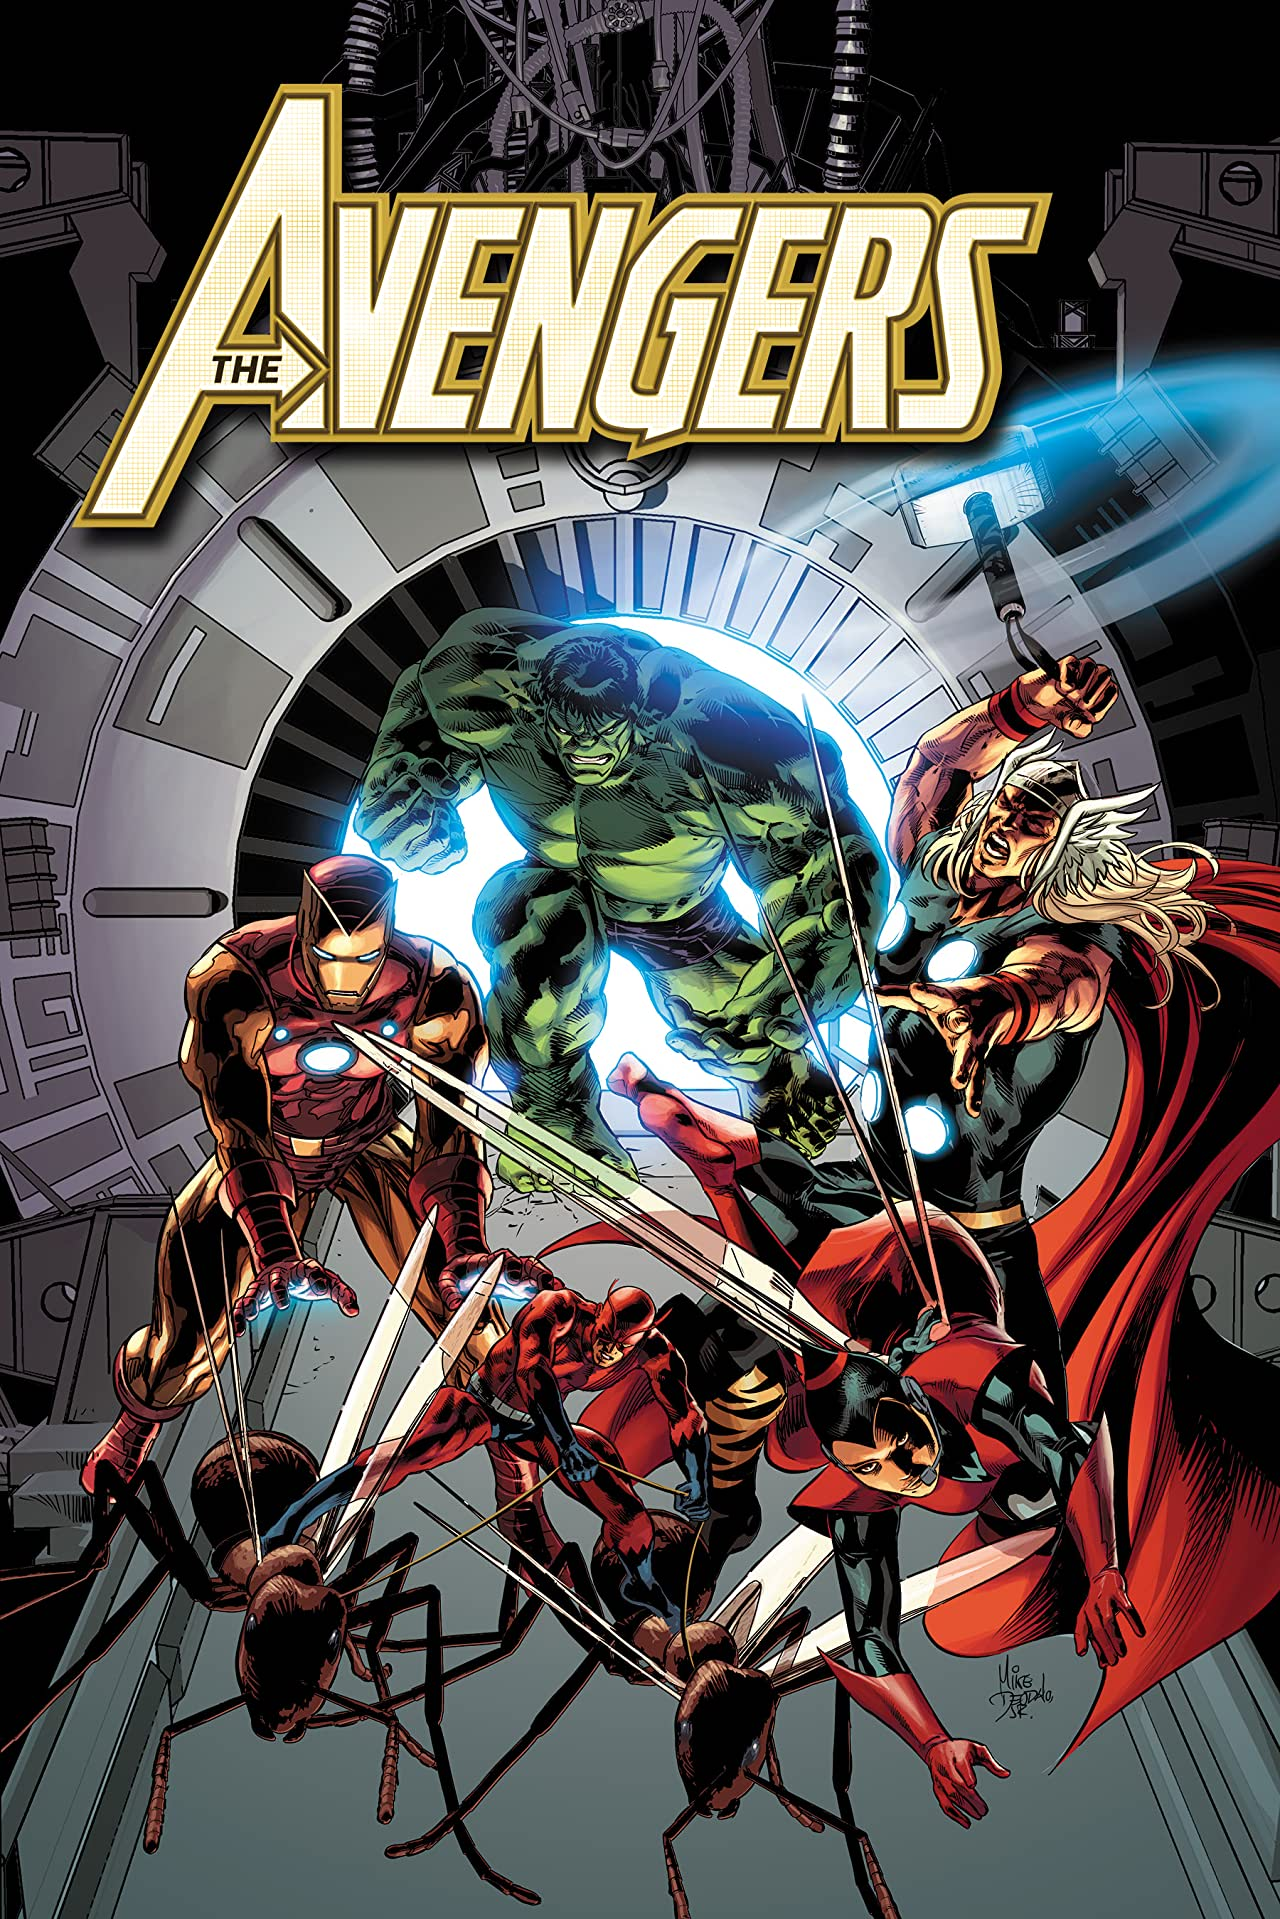 Avengers By Jonathan Hickman: The Complete Collection Vol. 4 (Trade Paperback)